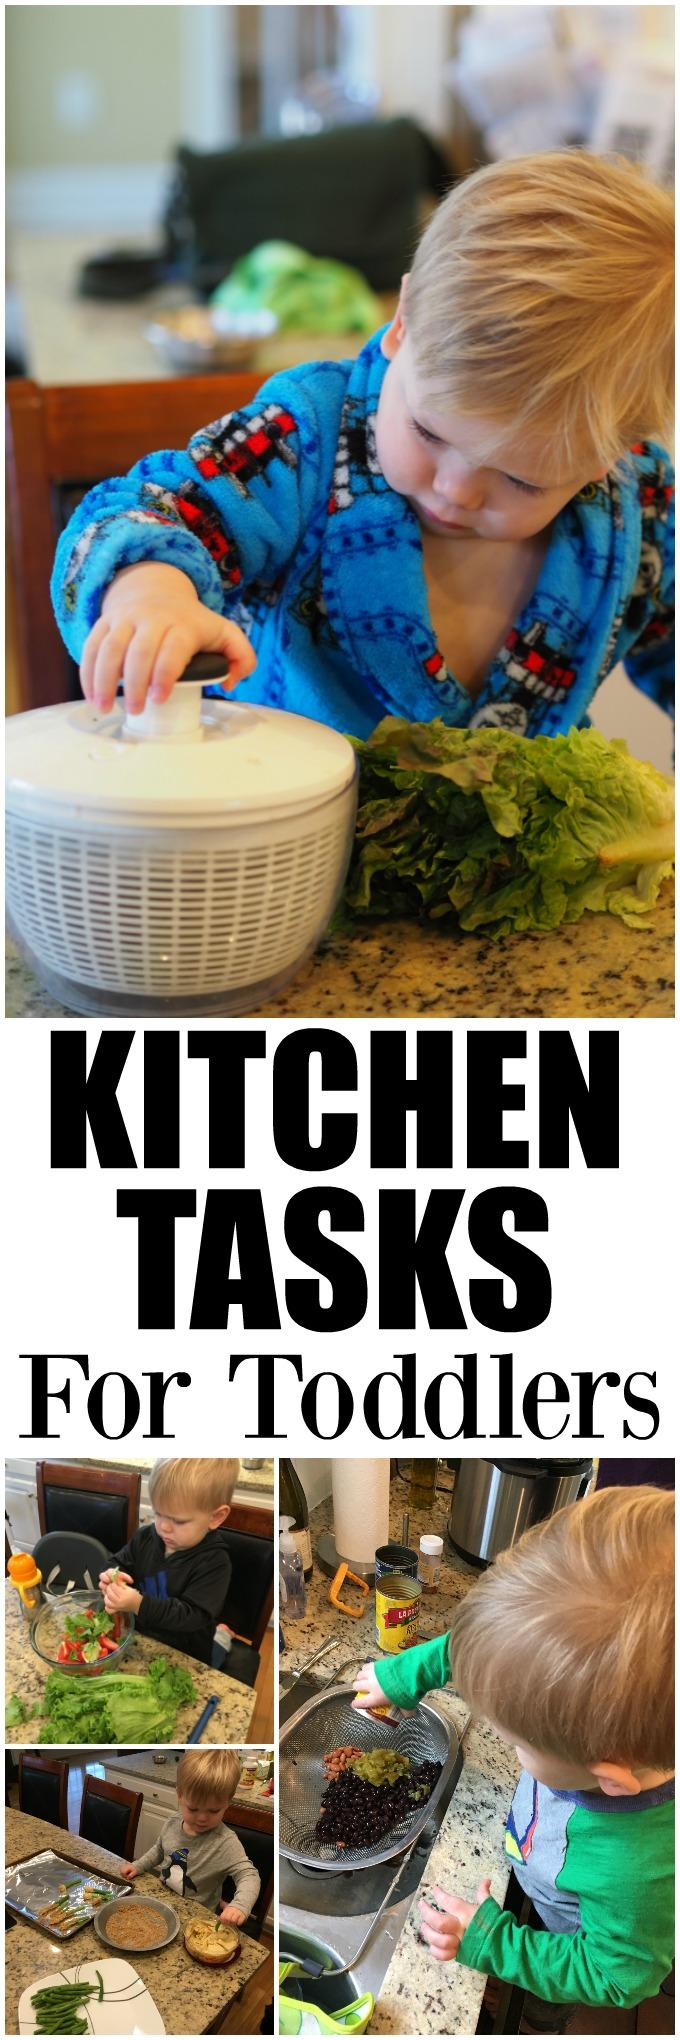 These simple kitchen tasks for toddlers are a great way for you spend time in the kitchen with your kids. They'll have fun learning, developing new skills and trying new things!